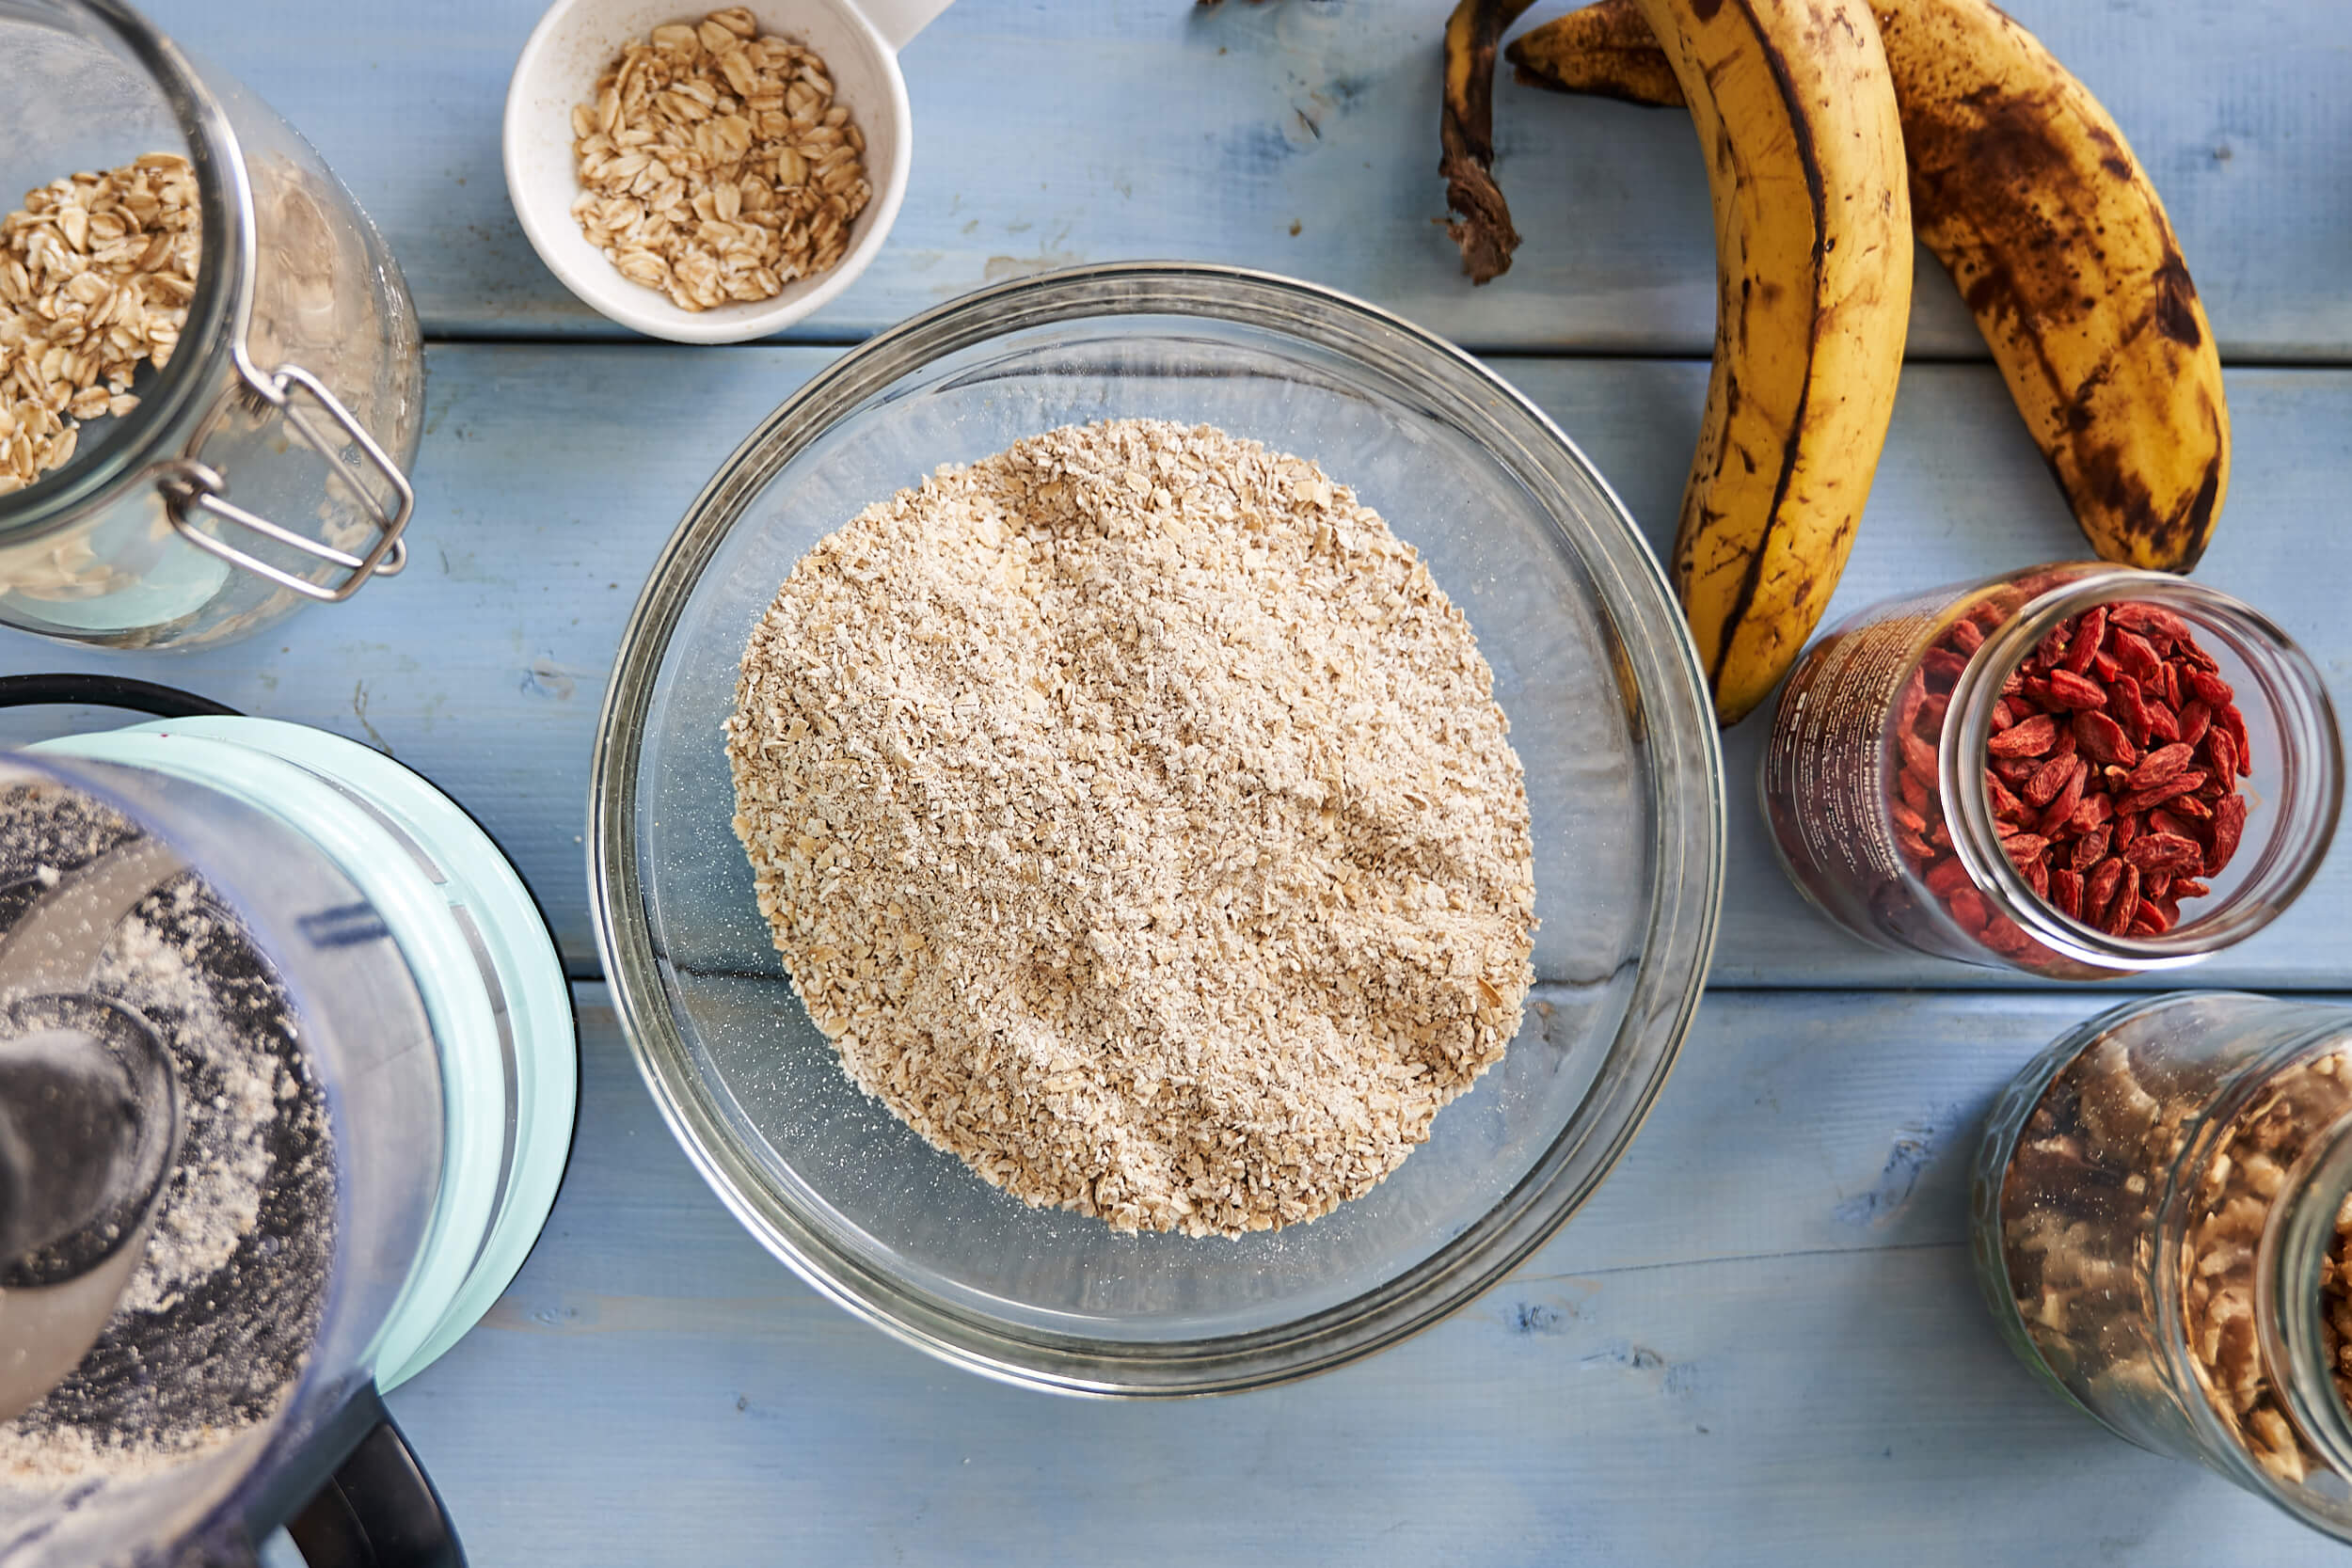 Grounds oats in a bowl for superfood granola bars